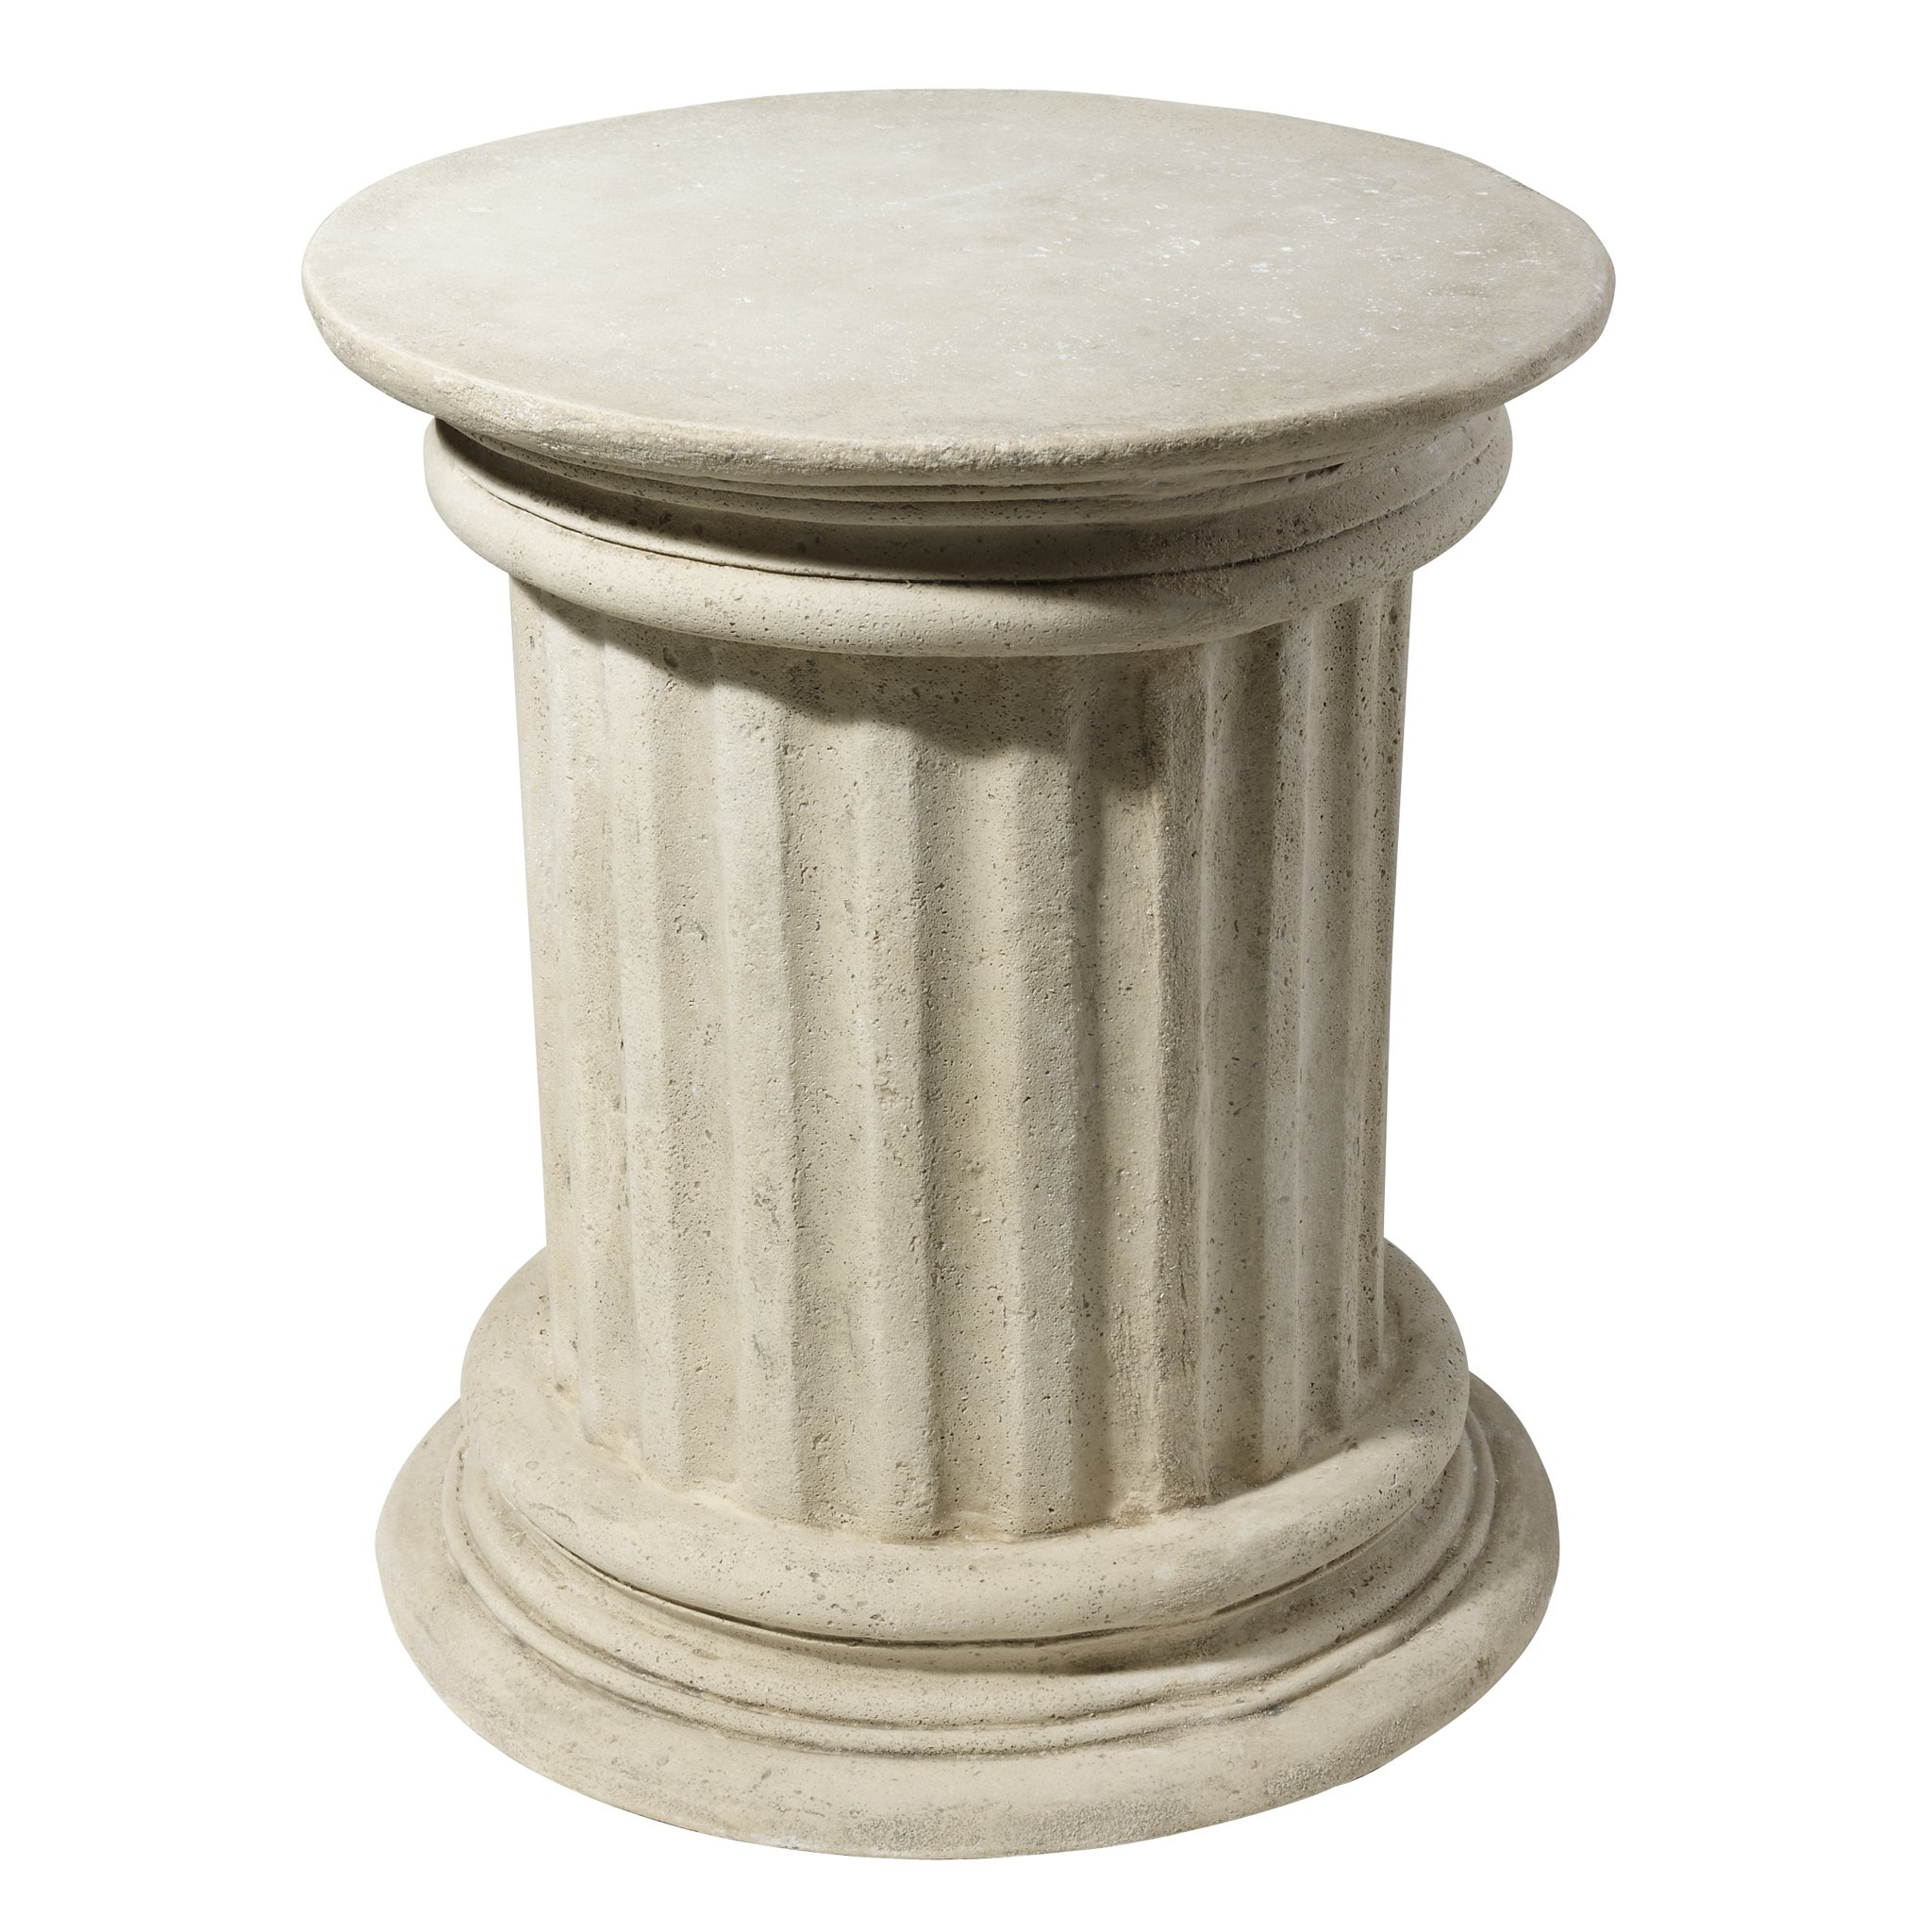 Design Toscano Roman Corinthian Capital Architectural Pedestal by Design Toscano